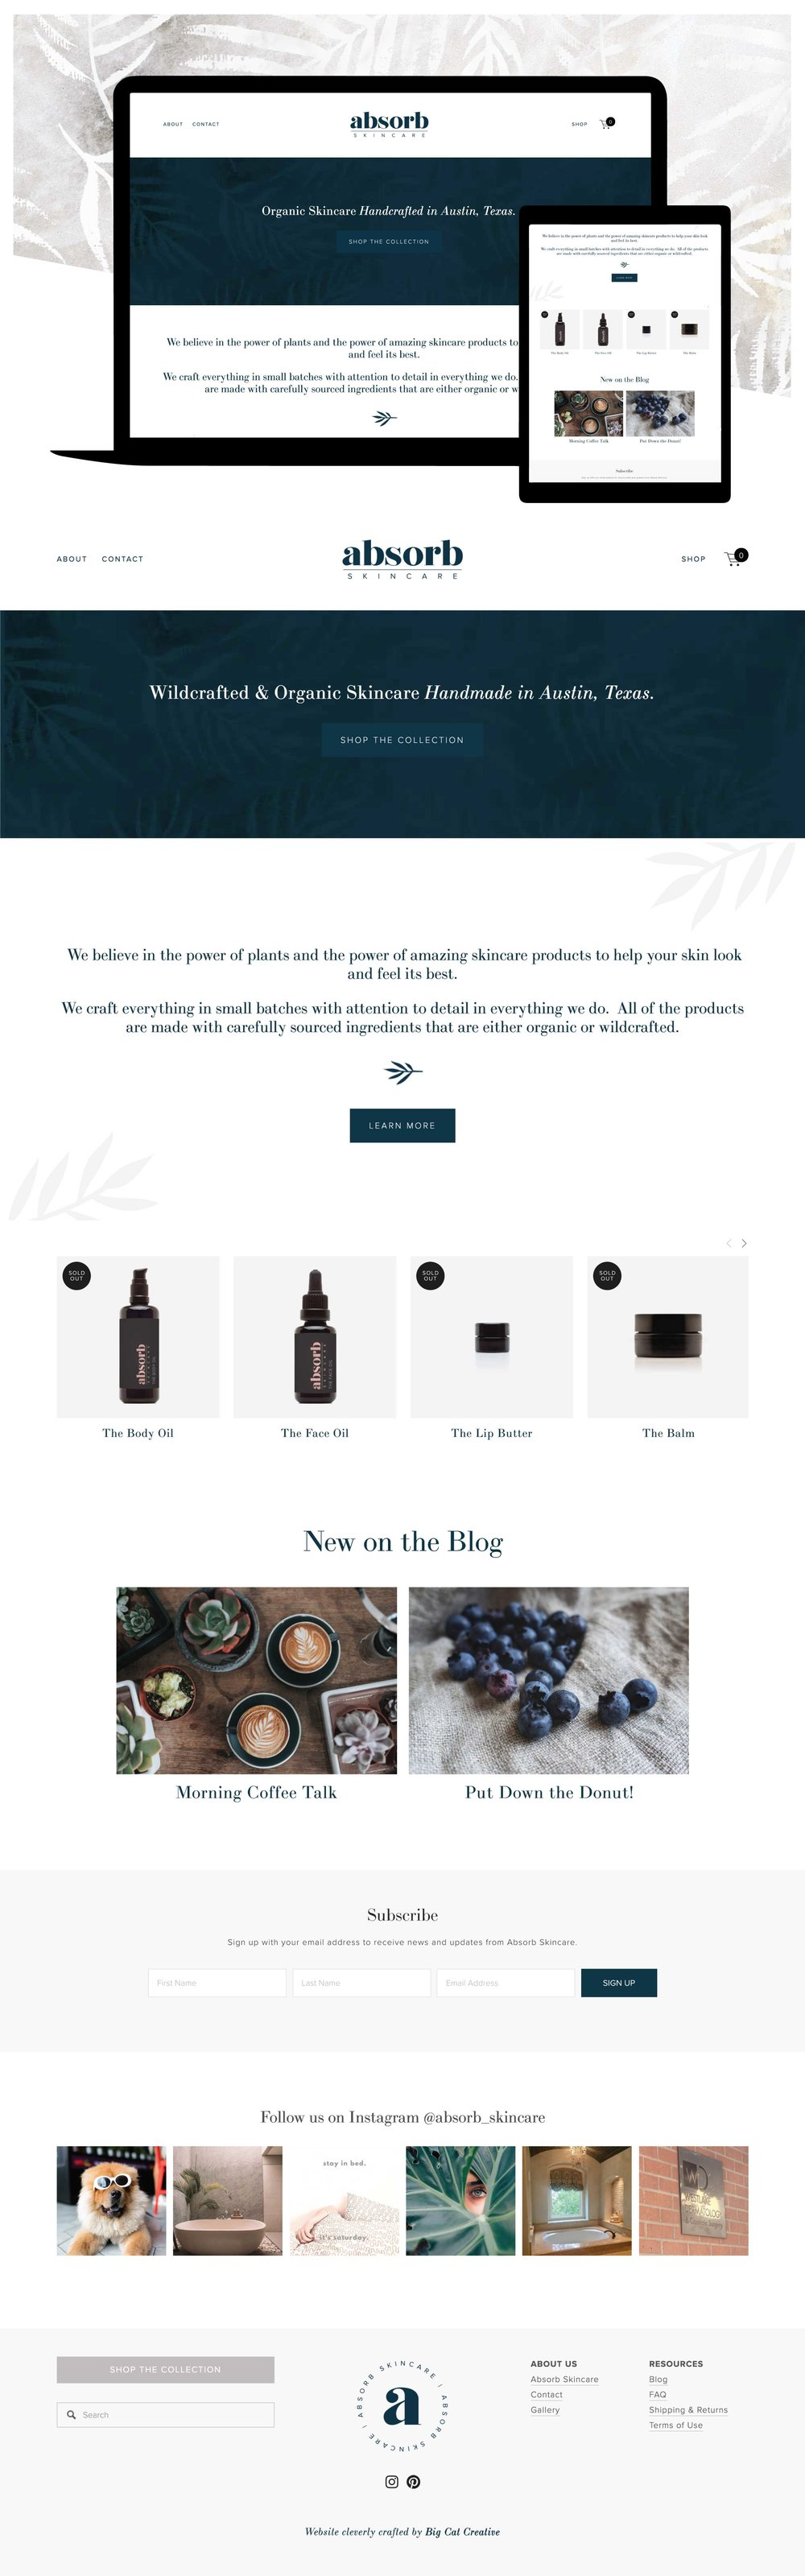 Absorb Skincare Squarespace Website Design by Big Cat Creative